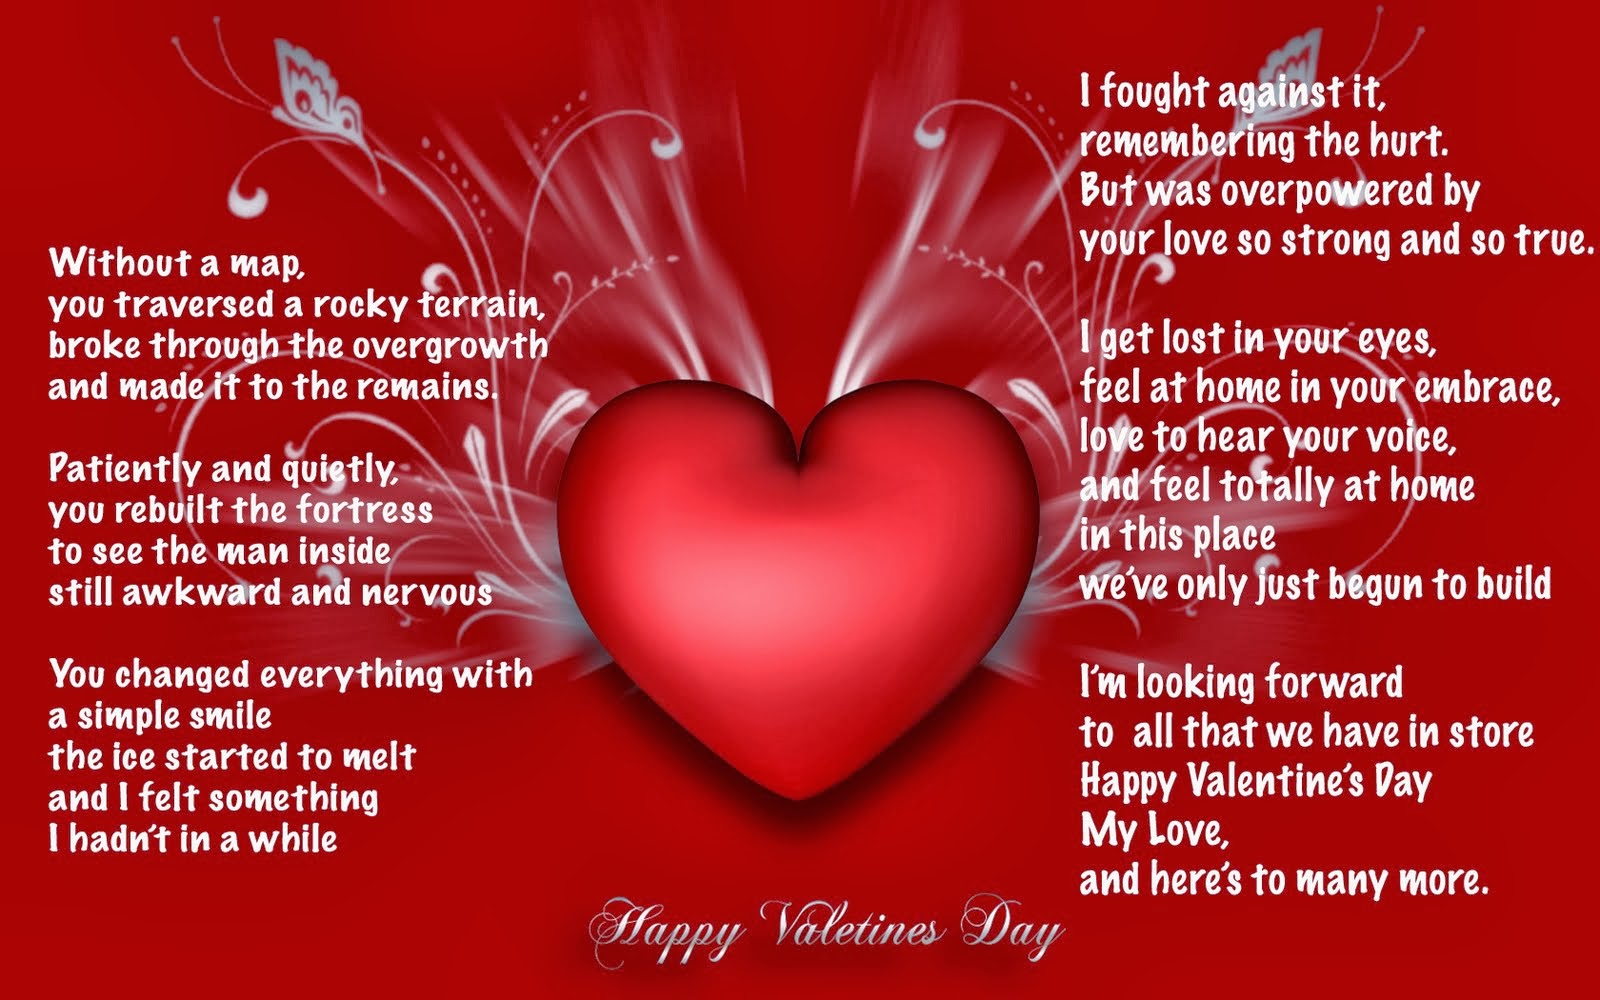 valentines day sayings quotes cheesy cute funny 2014